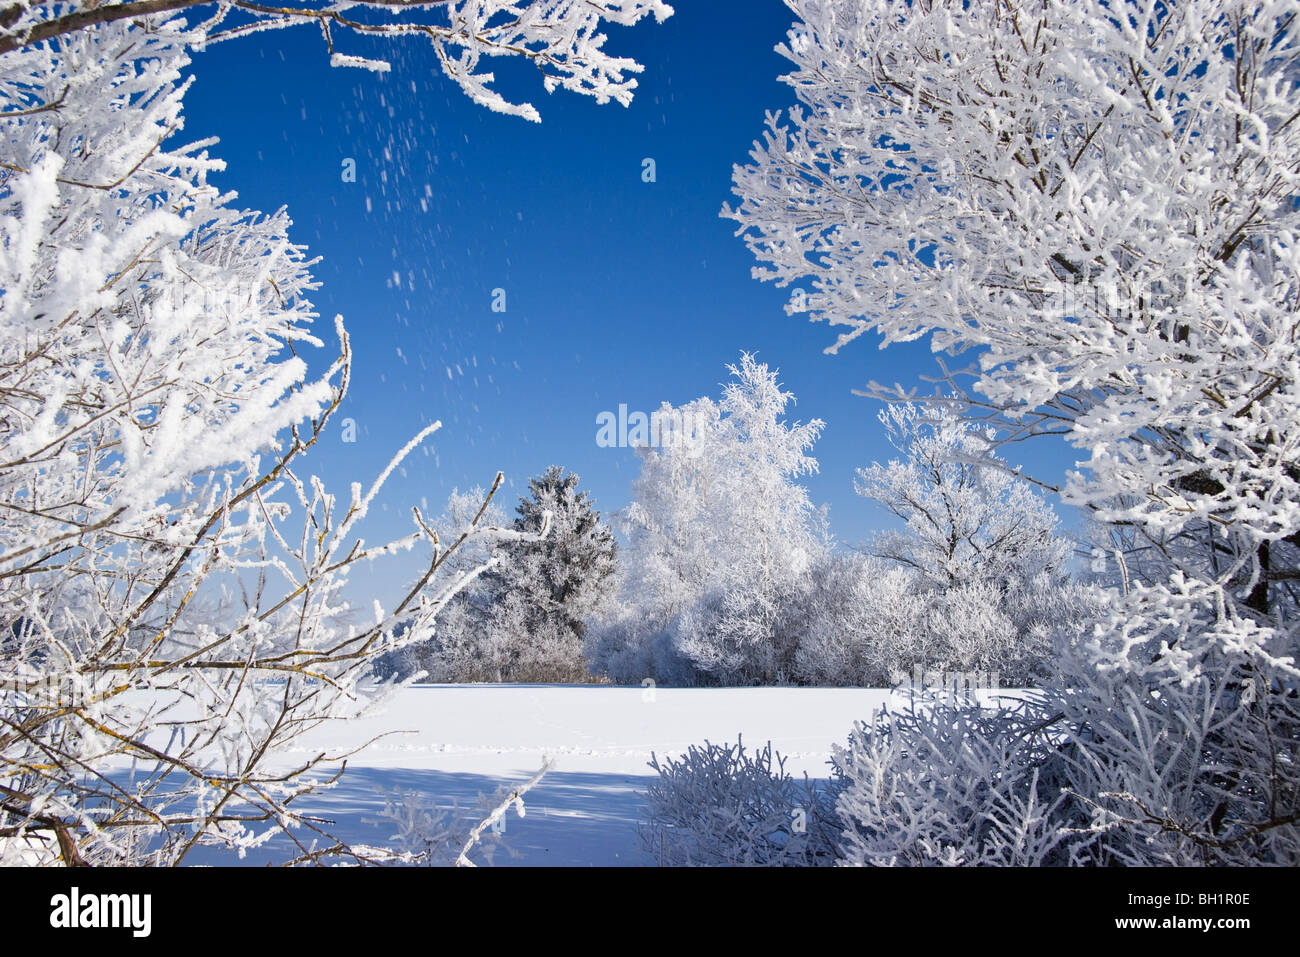 Winter scenery with trees and white frost, Upper Bavaria, Germany Stock Photo